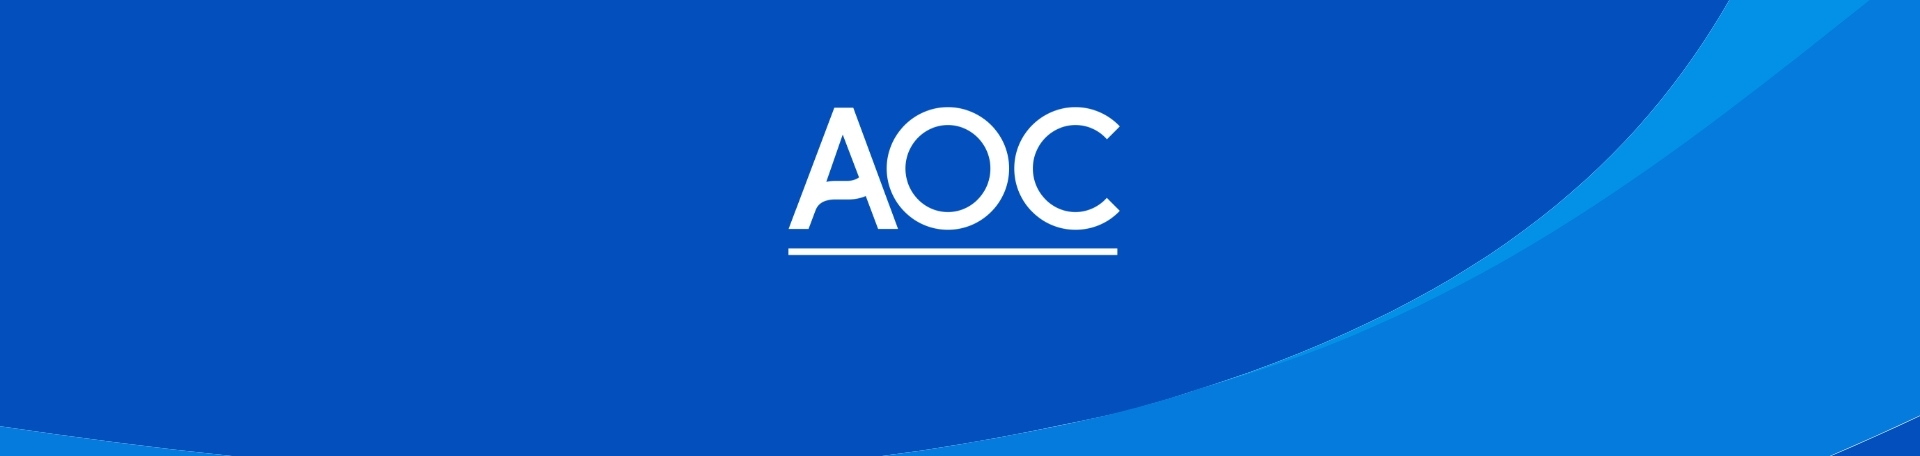 AOC installs new mixer at Indiana manufacturing plant